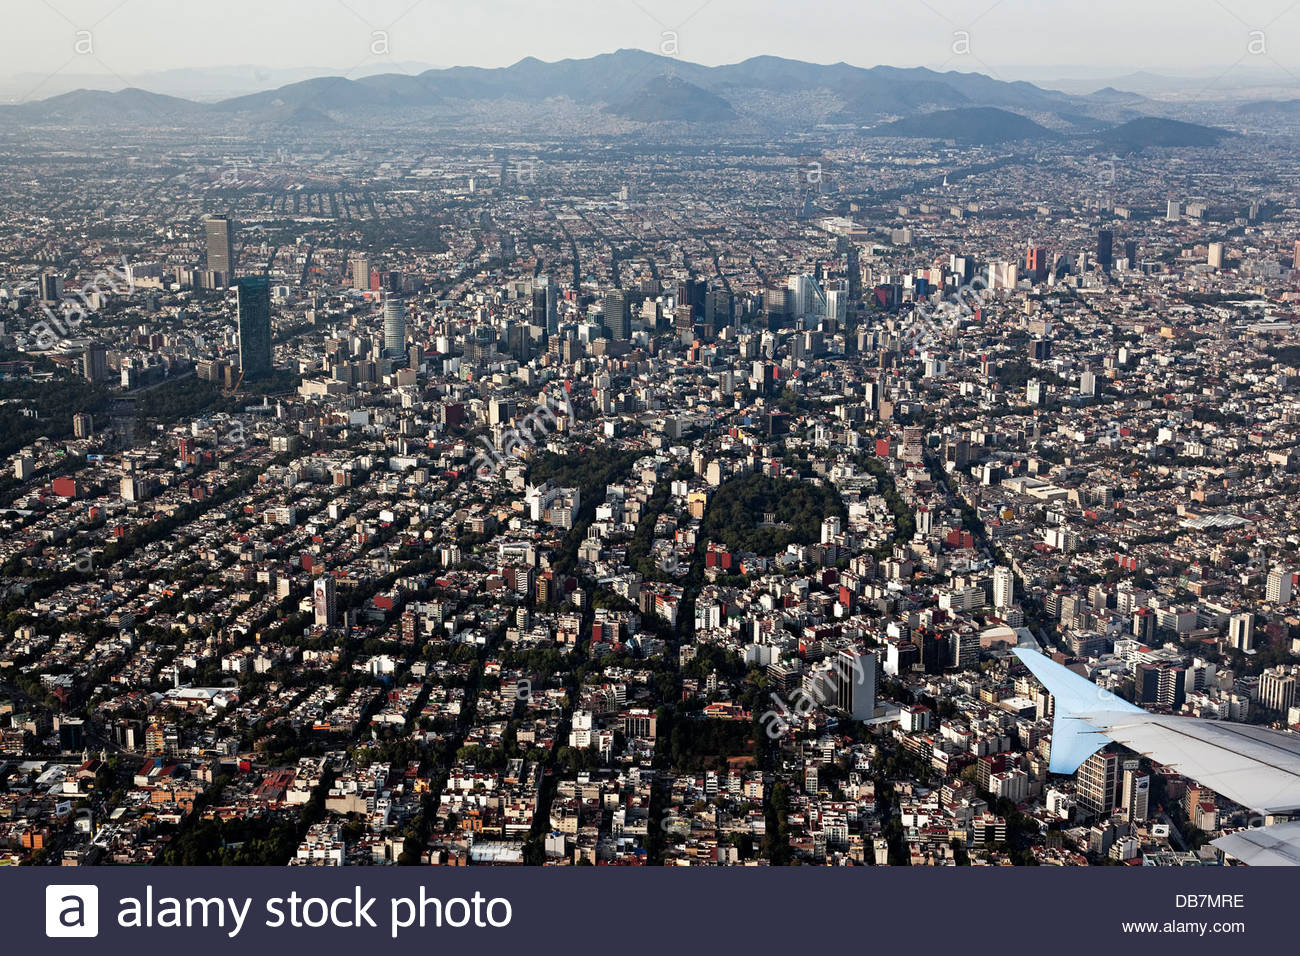 Aerial view over Mexico City - Stock Image